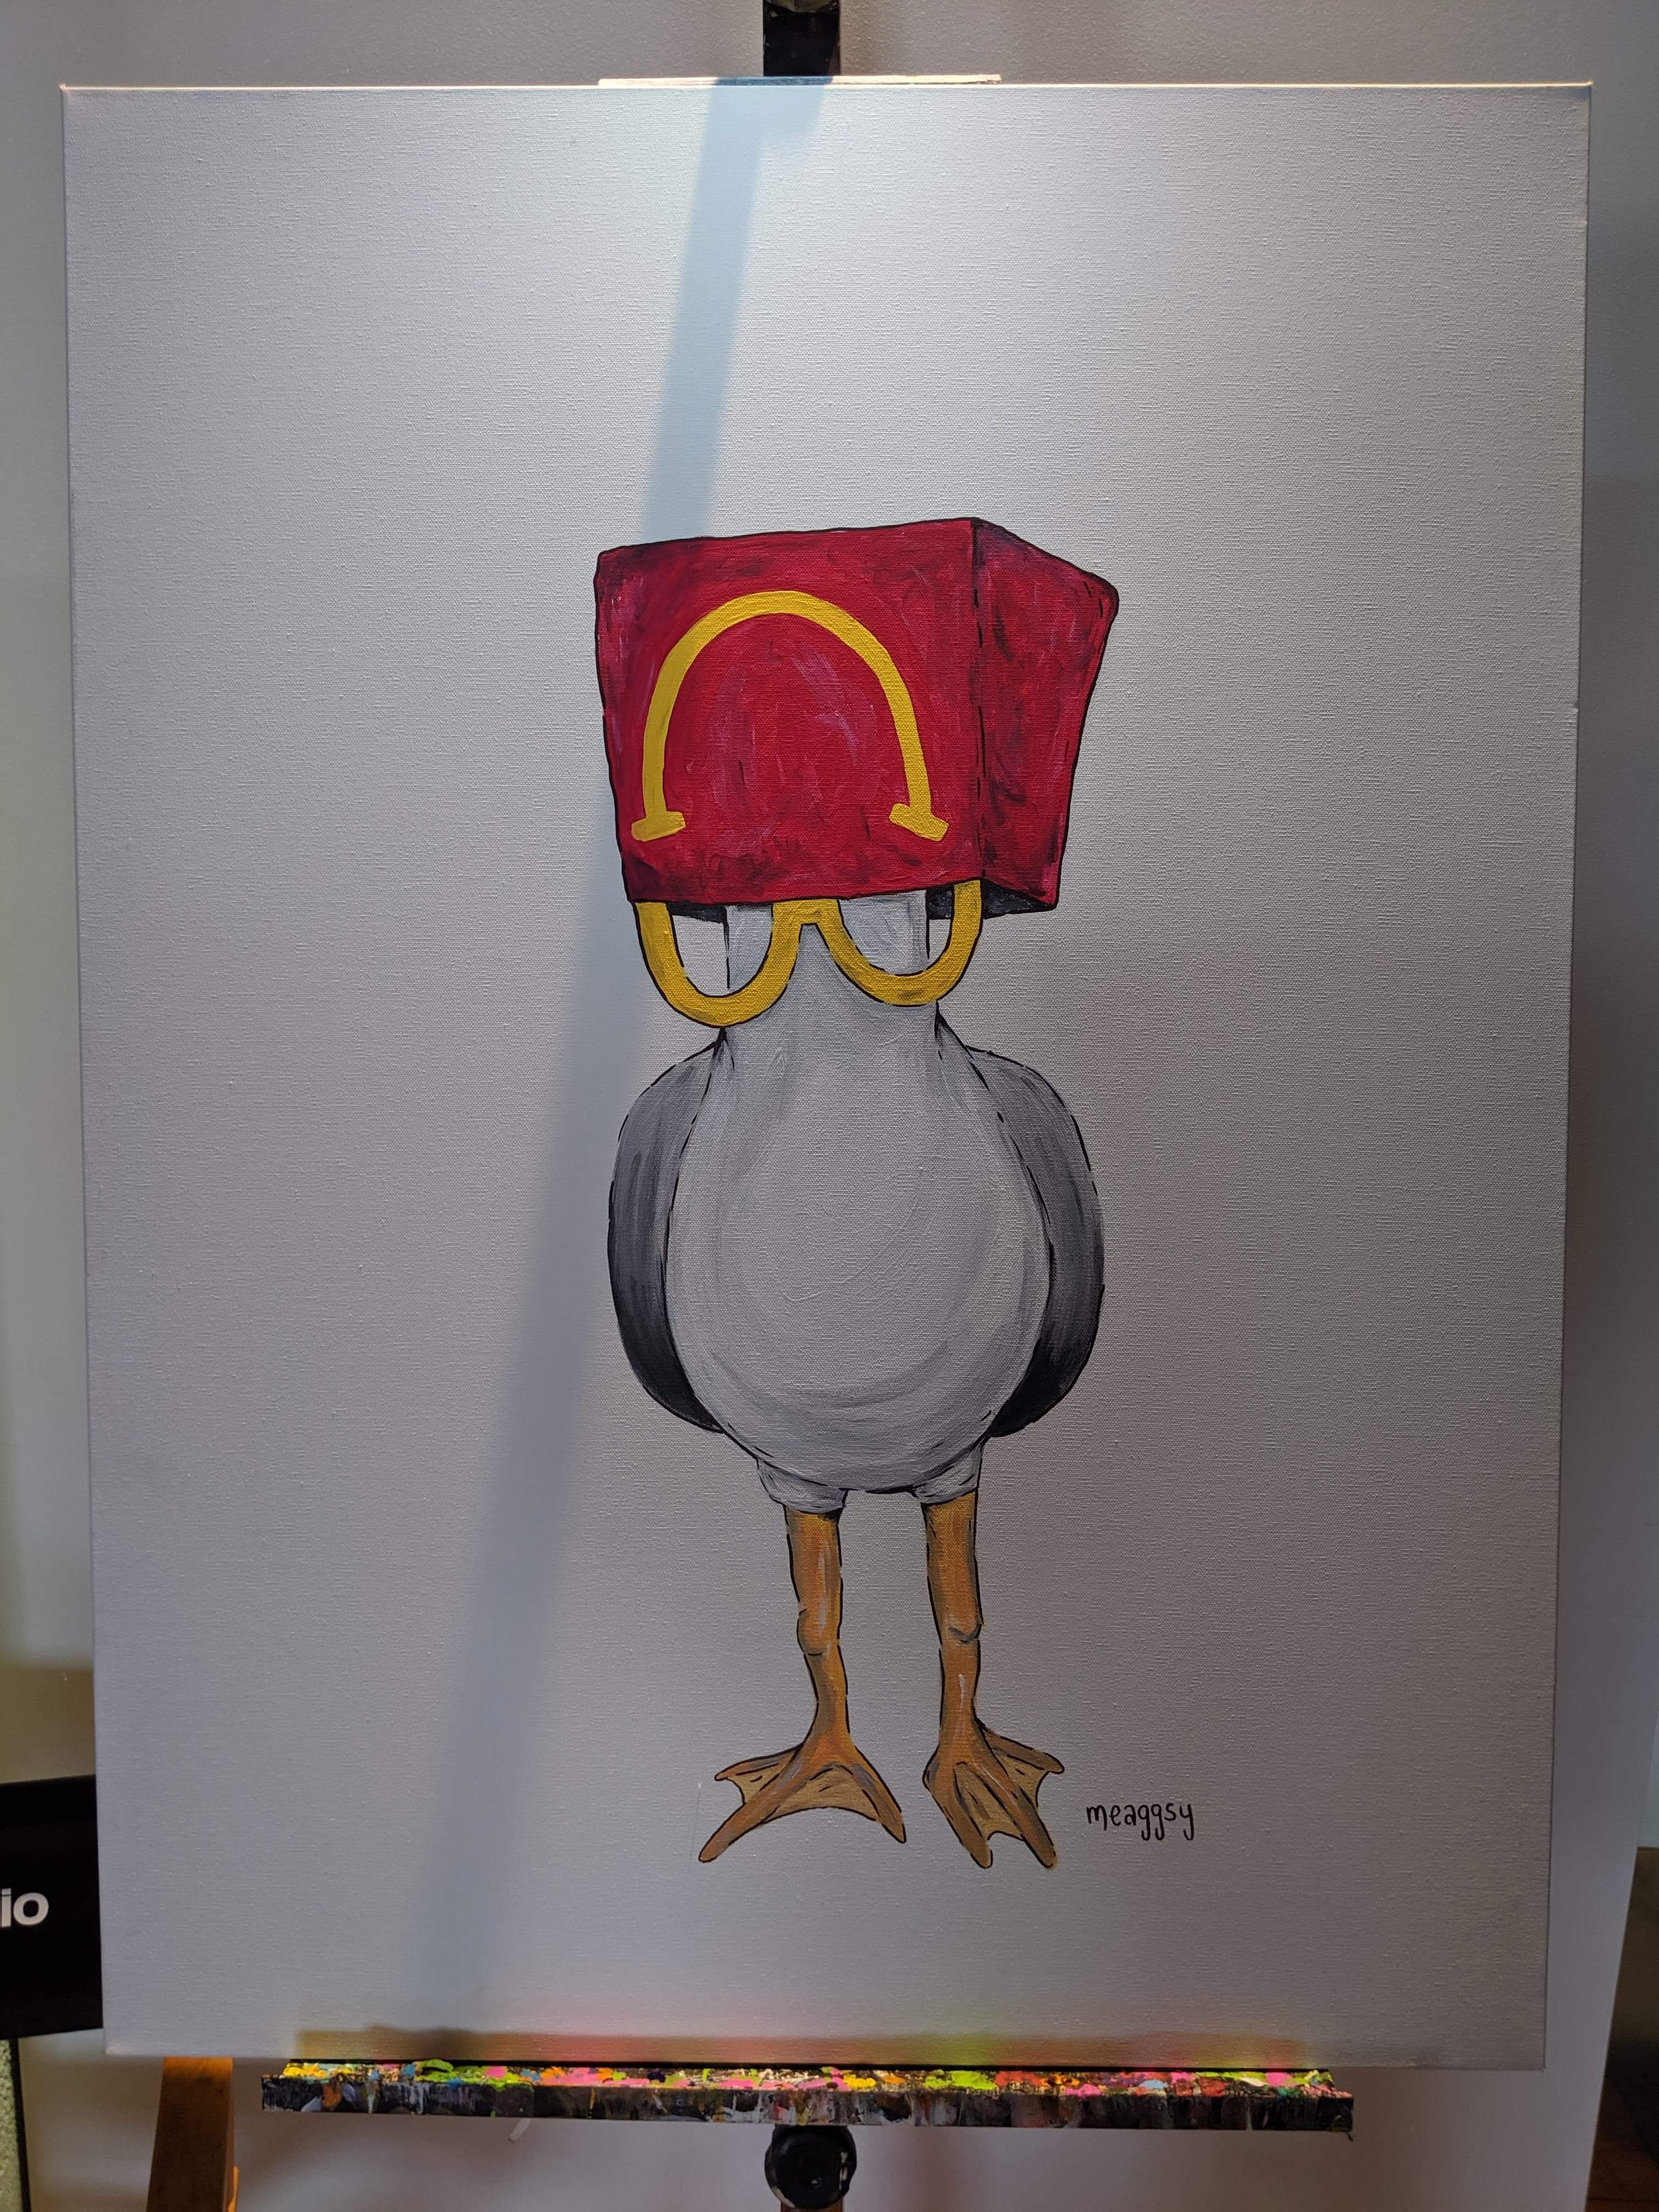 McSeagull by Meaggsy (Women's Herstory Edition)